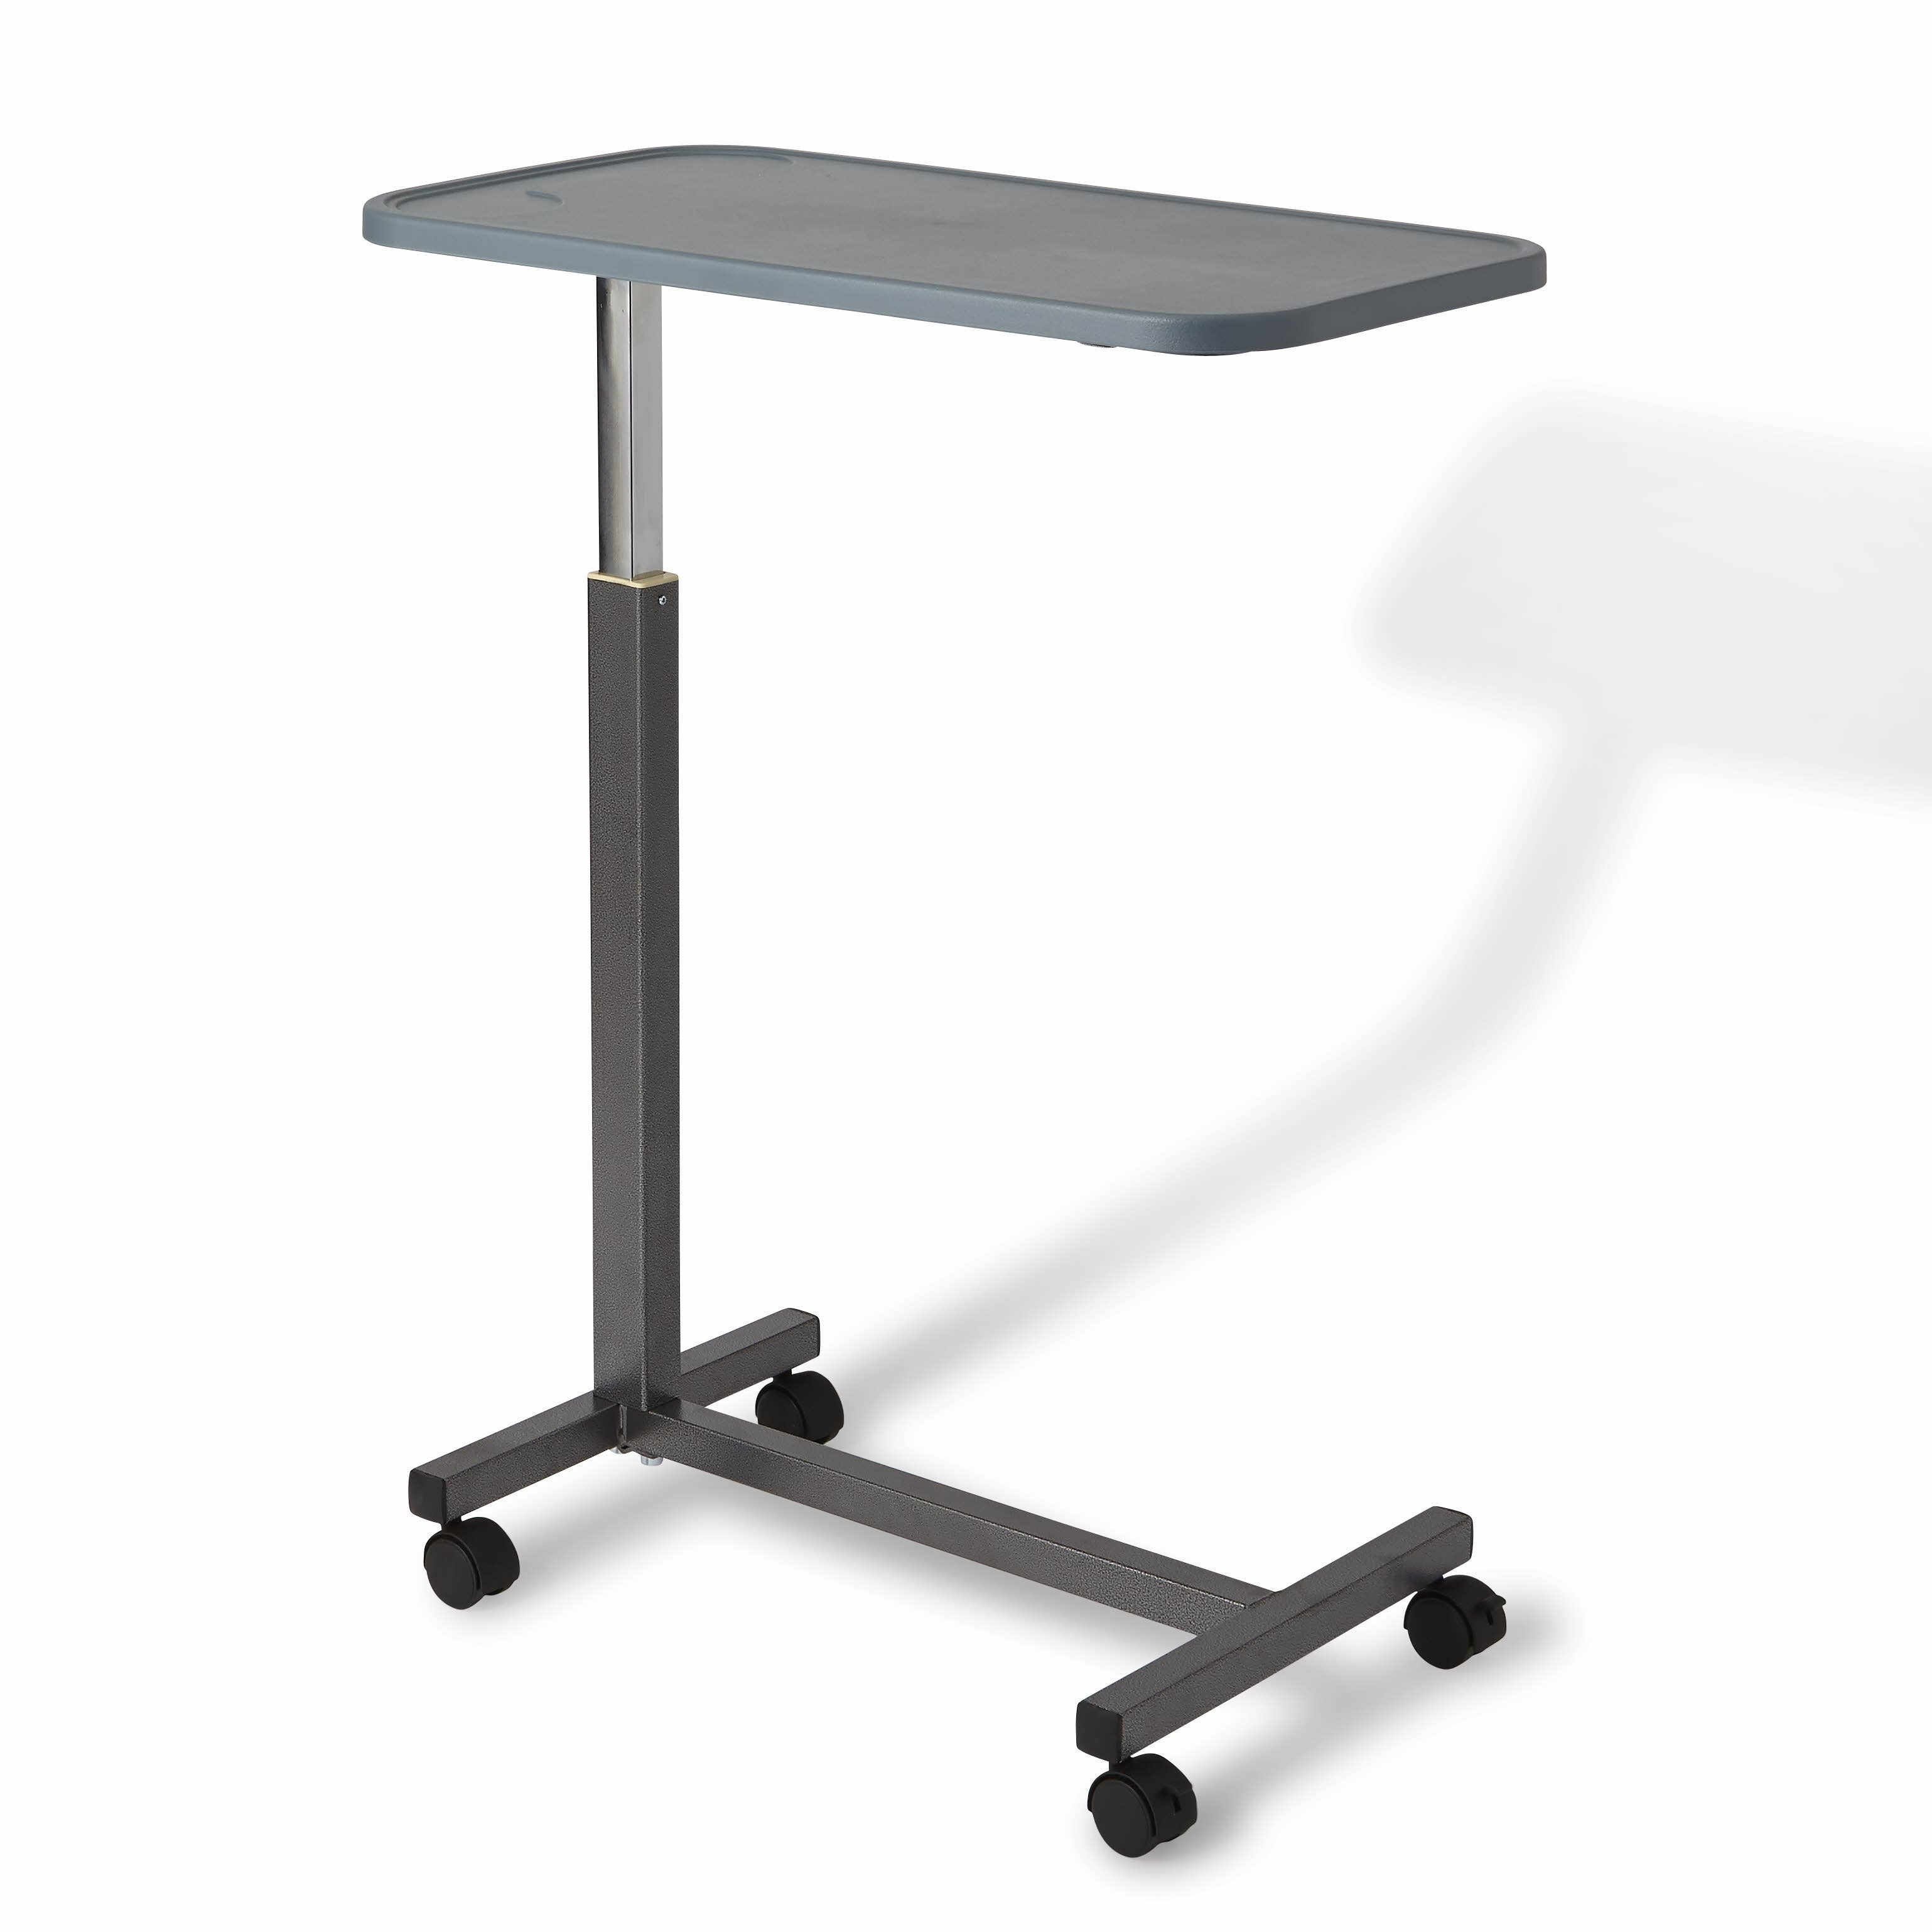 Medline Composite Top Adjule Overbed Table Free Shipping Today 3818803